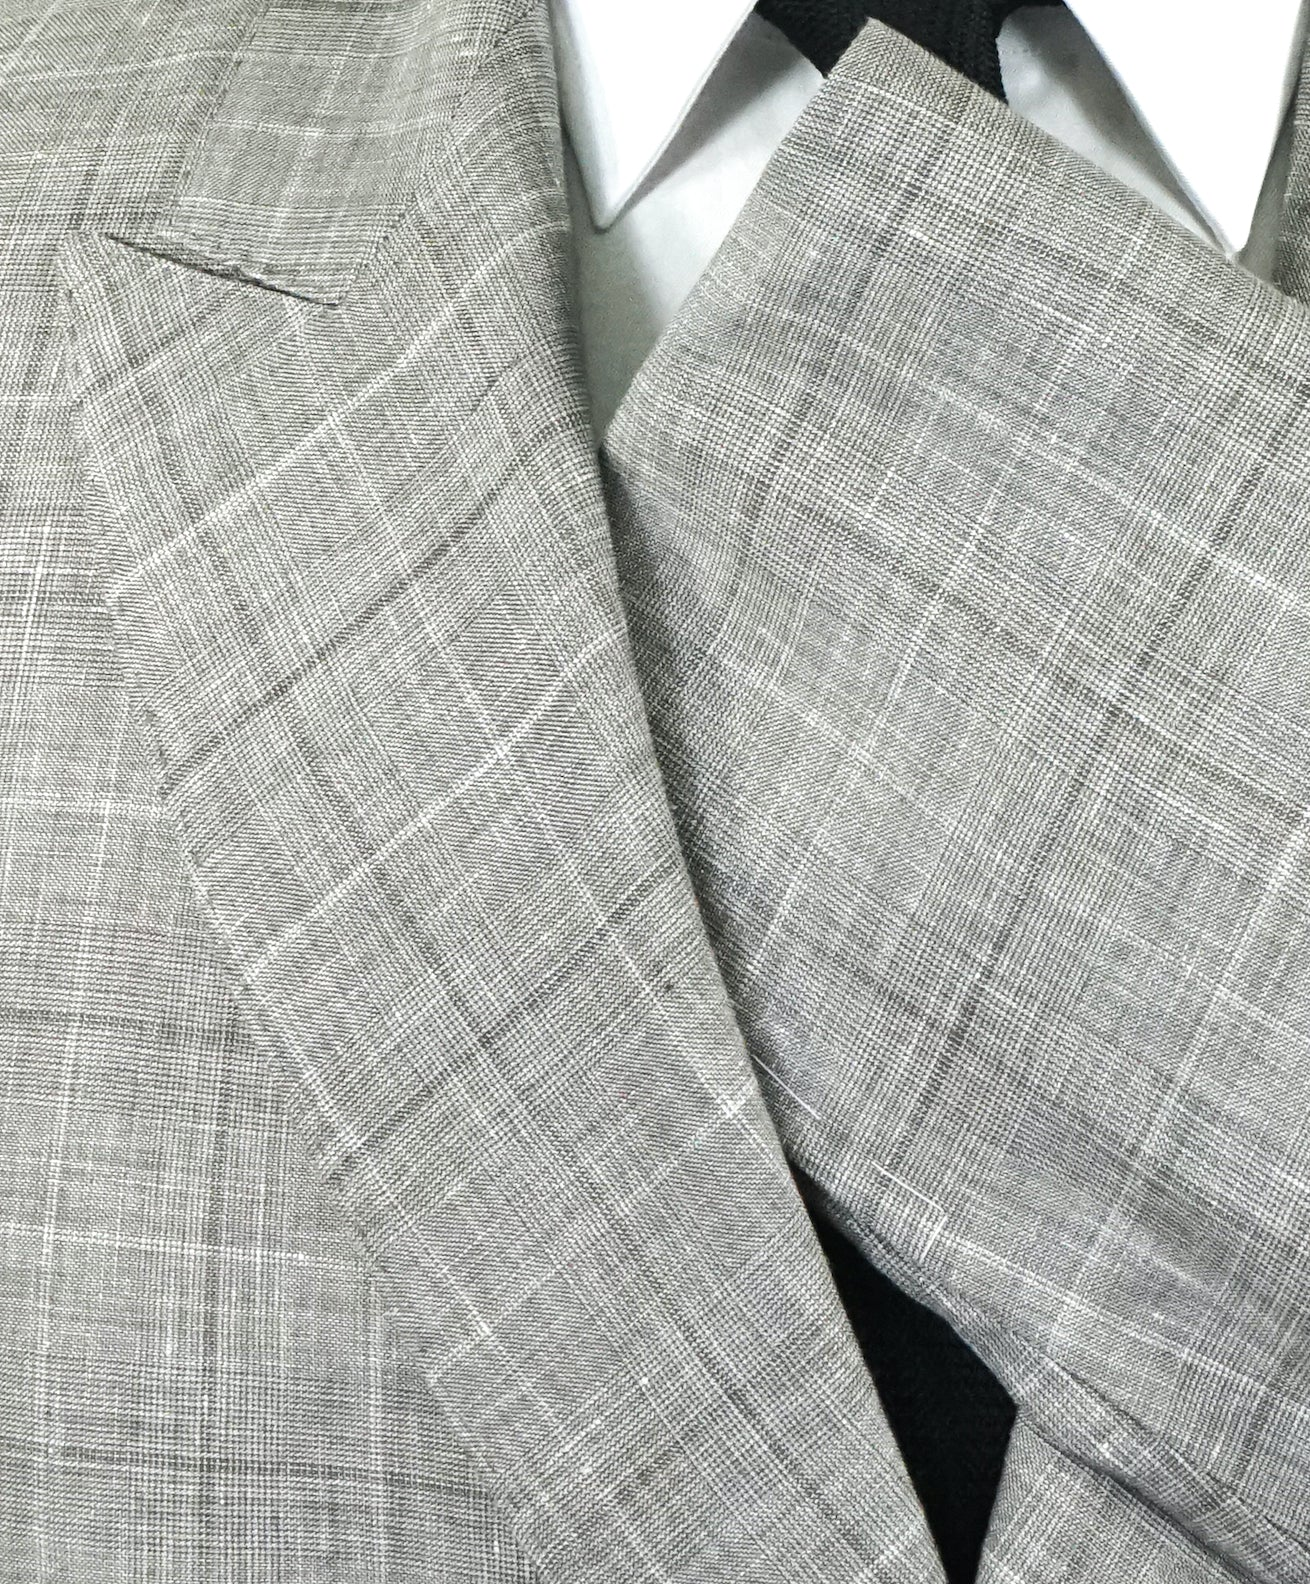 BRUNELLO CUCINELLI - Wool/Linen/Silk Plaid Double Breasted Gray Suit - 44R